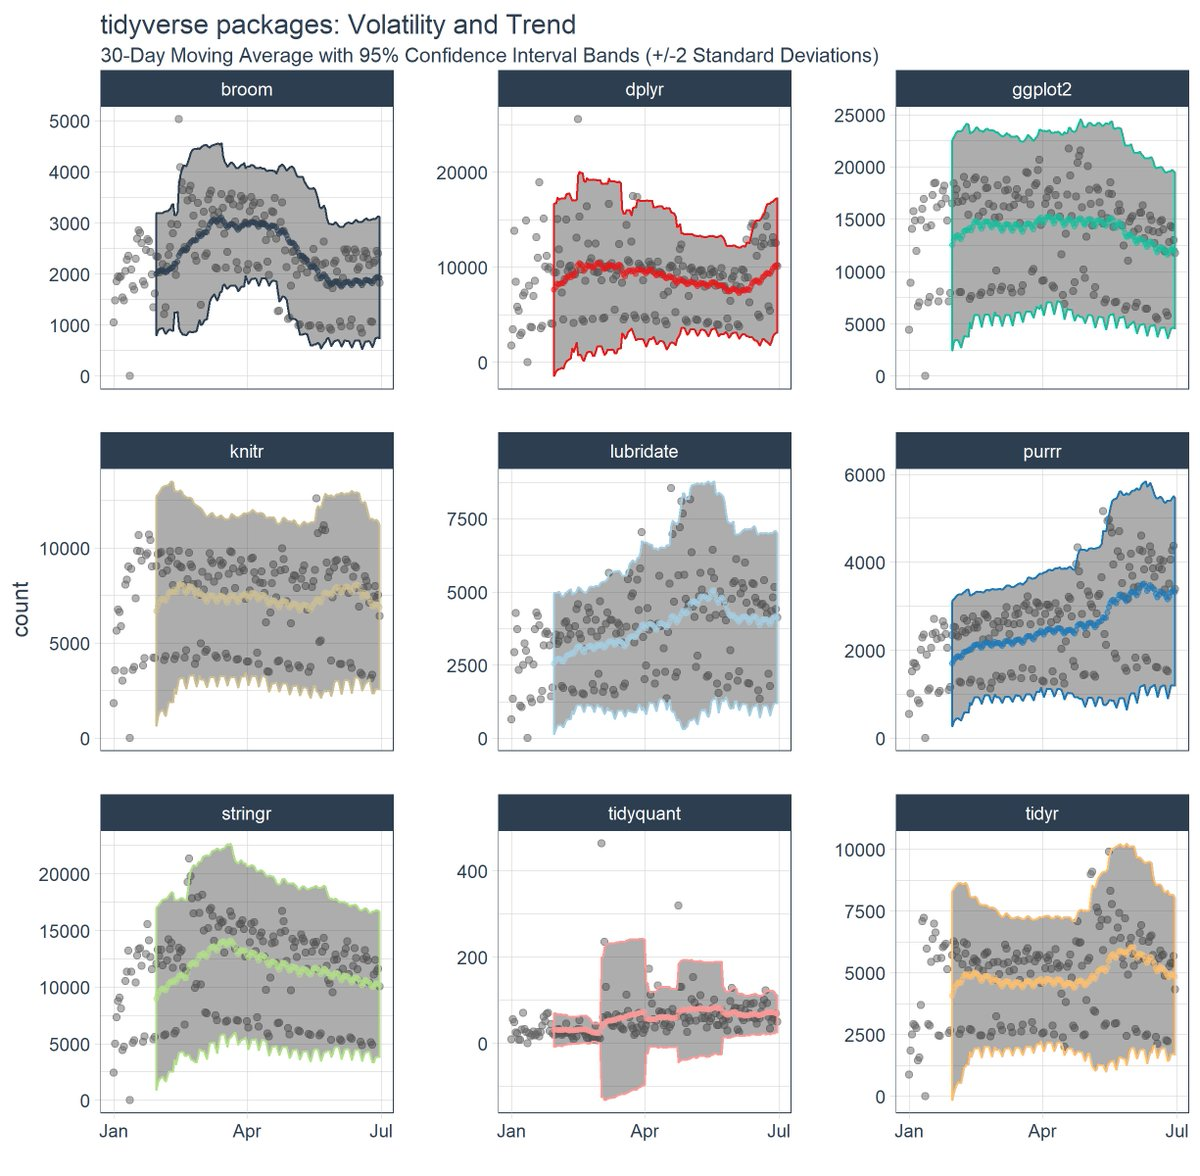 New tutorial! Tidy Time Series Analysis Pt2: Rolling Functions  http:// buff.ly/2uoQzio  &nbsp;   #rstats #DataScience #fintech #martech #dataviz #data<br>http://pic.twitter.com/k6gN4EP07q